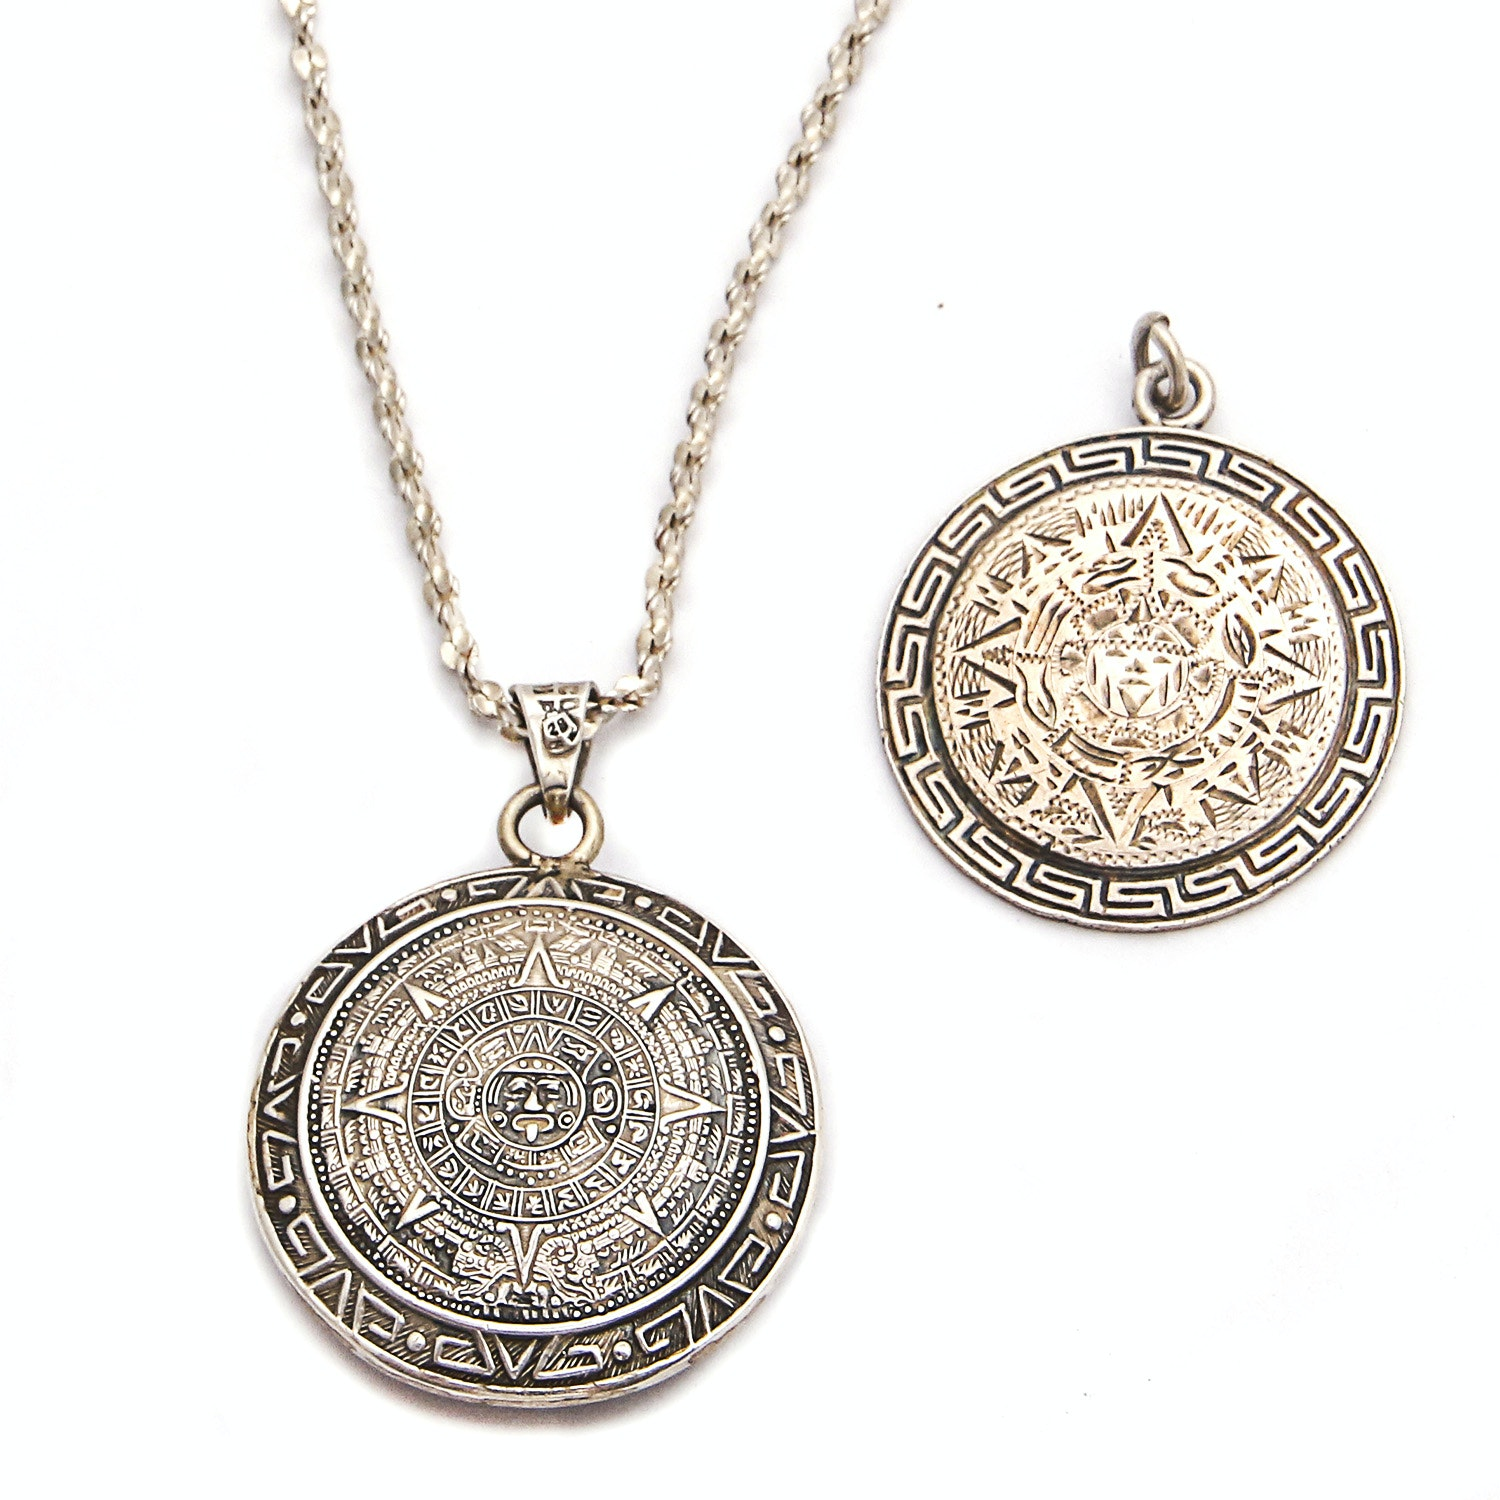 Sterling Silver Necklace with Pair of Mayan Sun Calendar Pendants